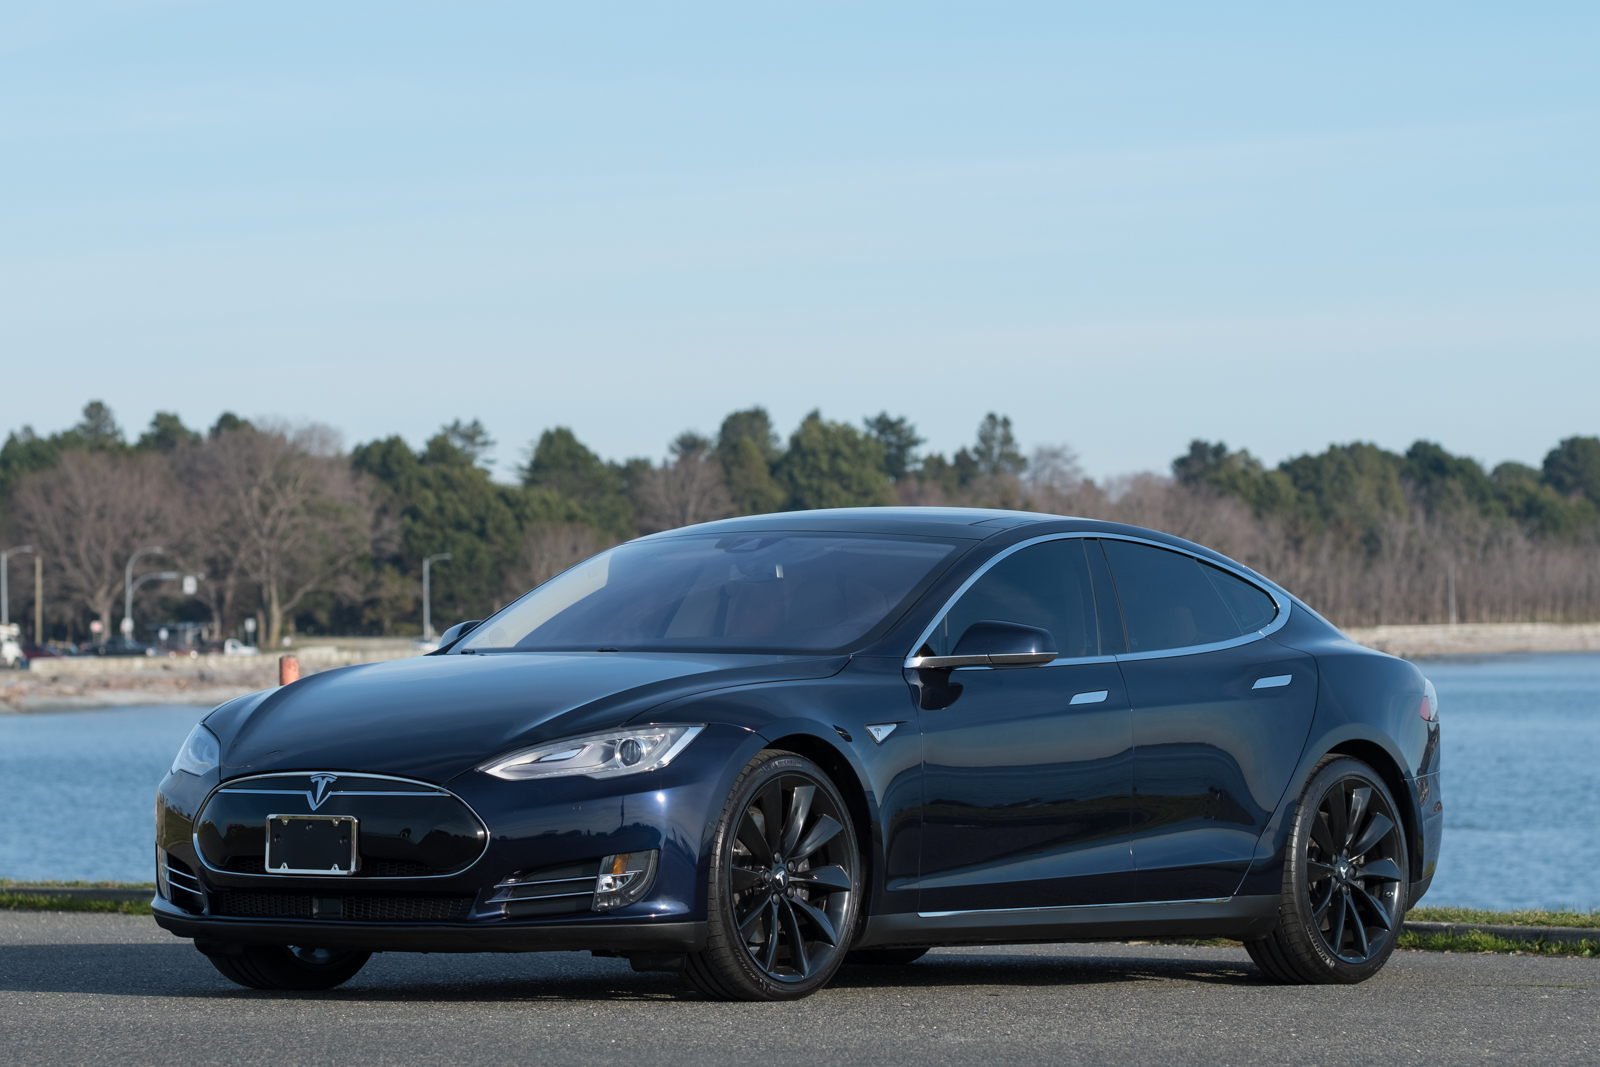 2015 Tesla Model S 85D for sale at Silver Arrow Cars Ltd in Victoria